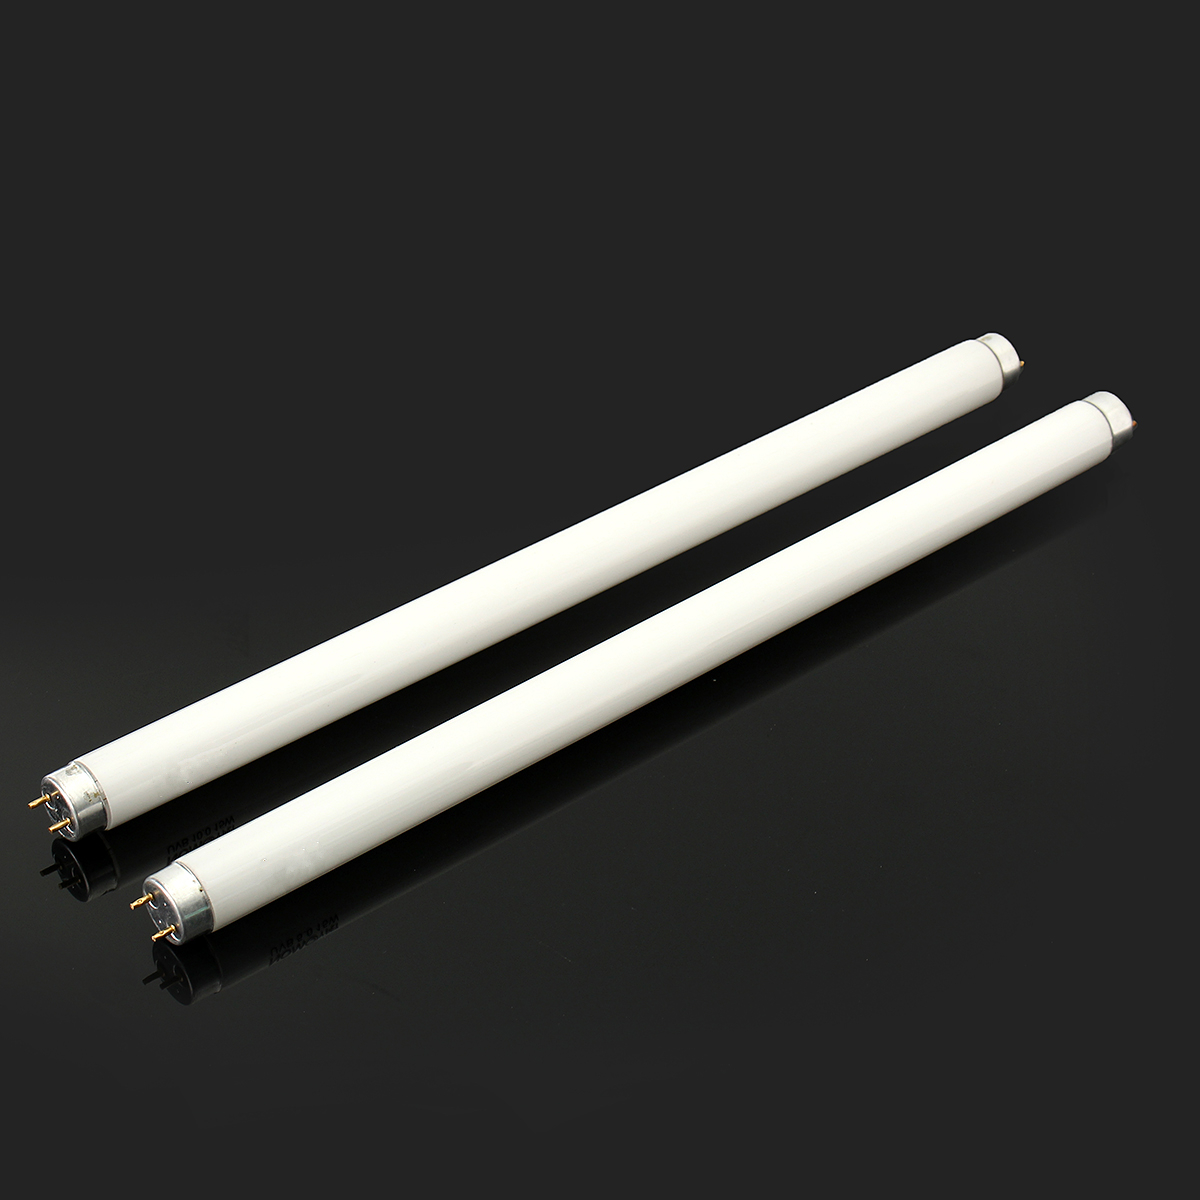 T8 15W 45CM Reptile Pet Vivarium Fluorescent Tube Light Lamp Bulb UVB 5.0 UVB 10.0